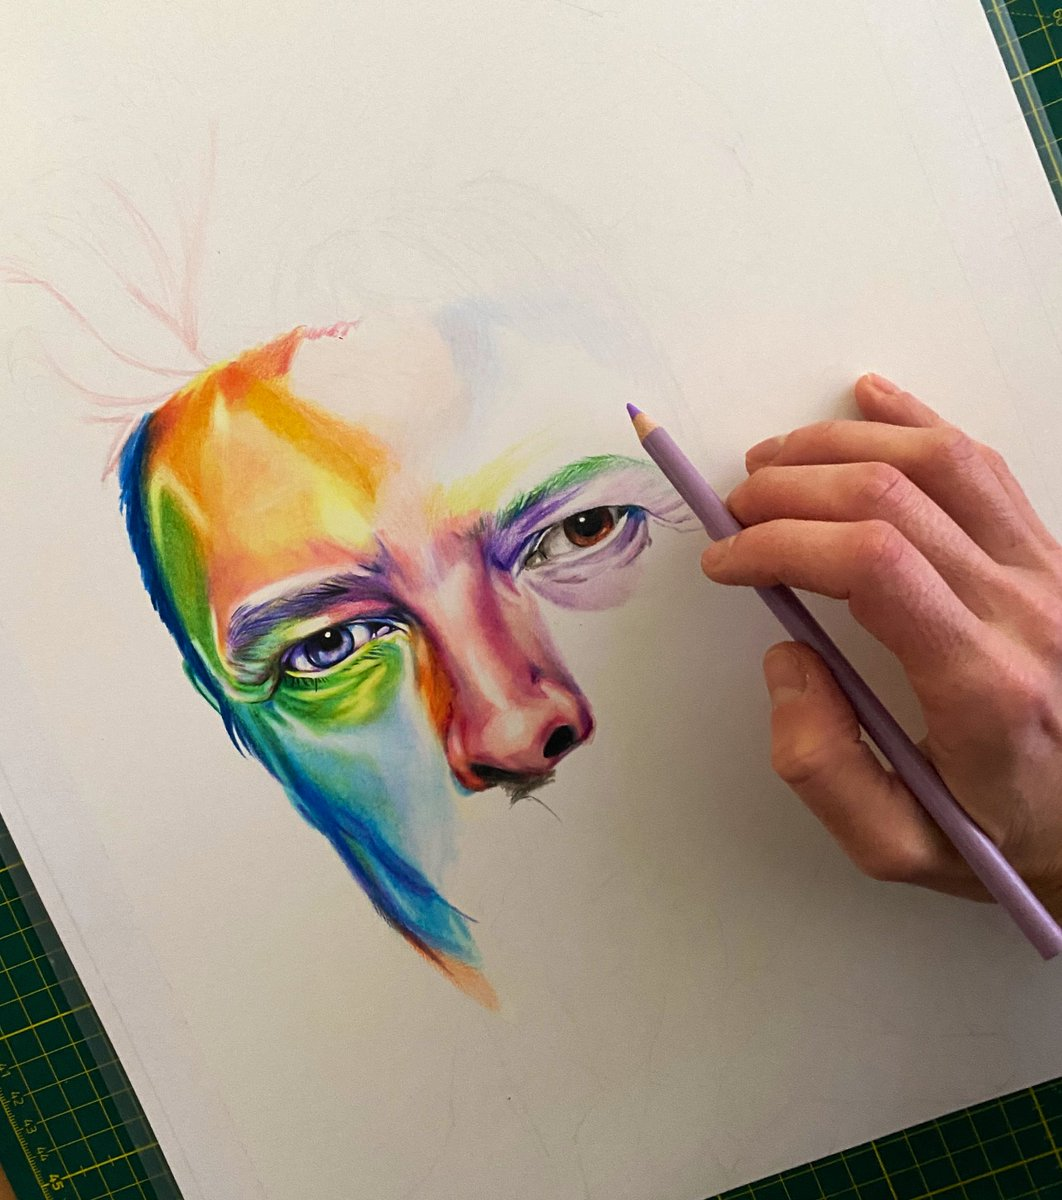 Early stages of what I hope will be a very cool David Bowie portrait. (A3) Materials: Prismacolor and Luminance pencils on Bristol Smooth 270gr paper. I'm picking the colors for the face randomly 🙈. Let me know what you think! #artwork #drawing #illustration #DavidBowie #arte